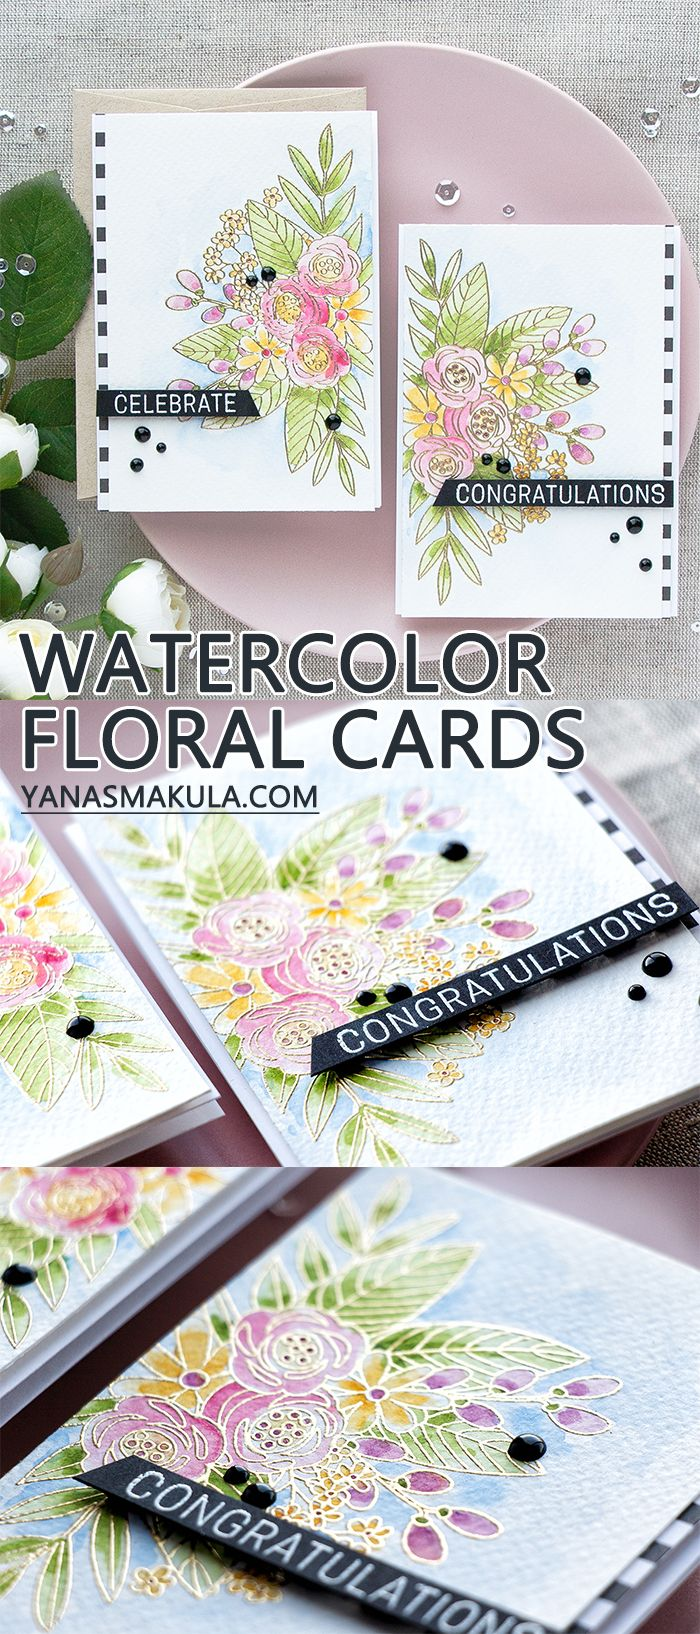 Simon Says Stamp | June 2017 Card Kit - Floral Watercolor Cards